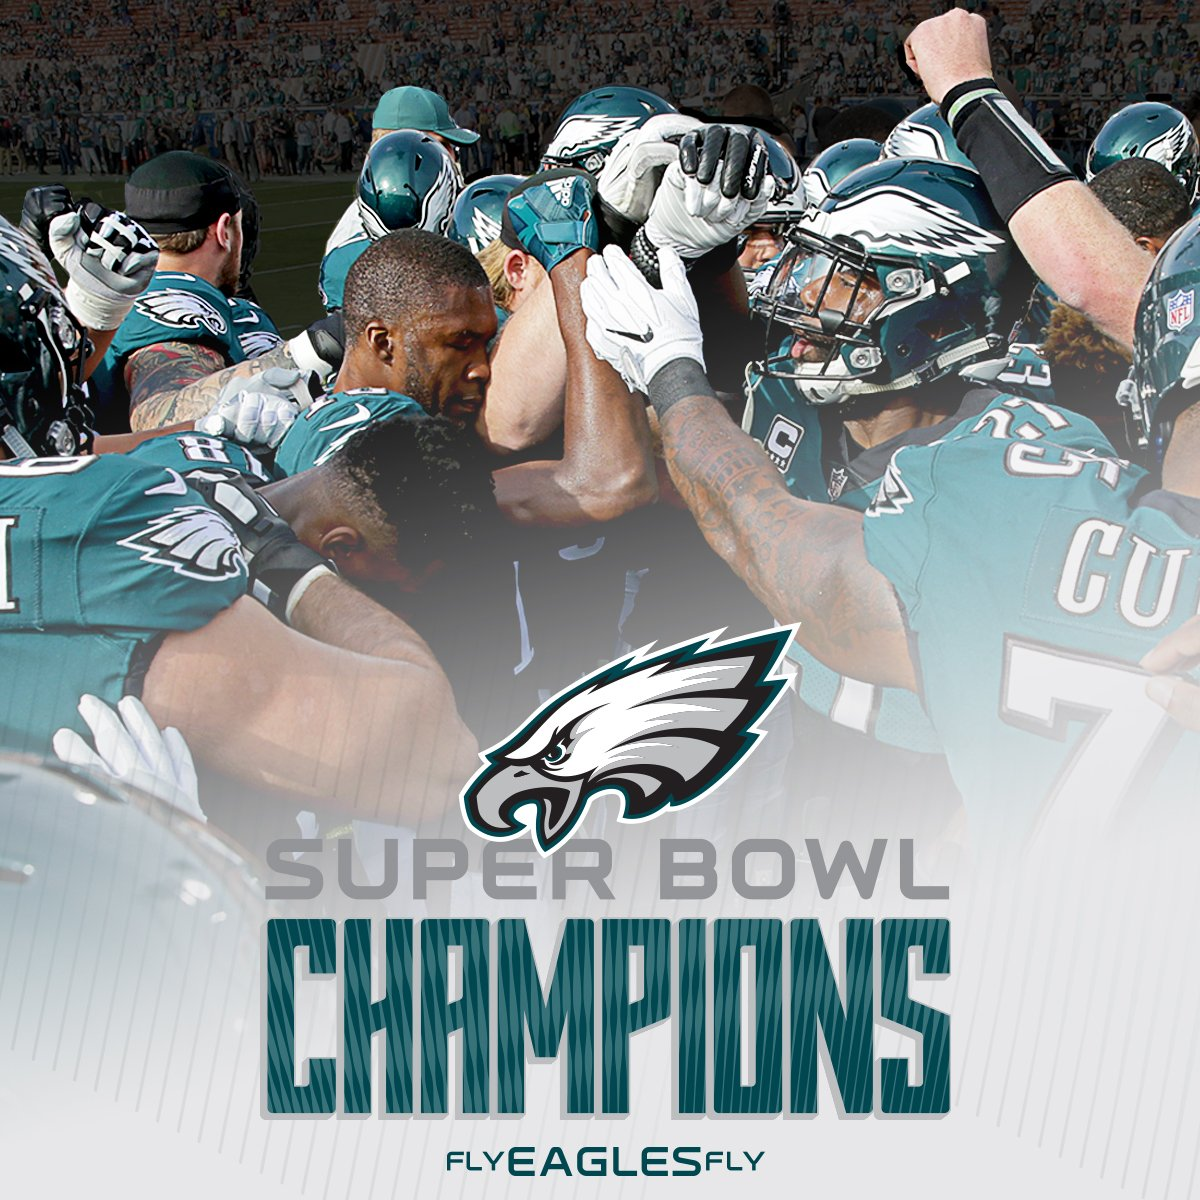 Philadelphia Eagles win their first Super Bowl in 2018.